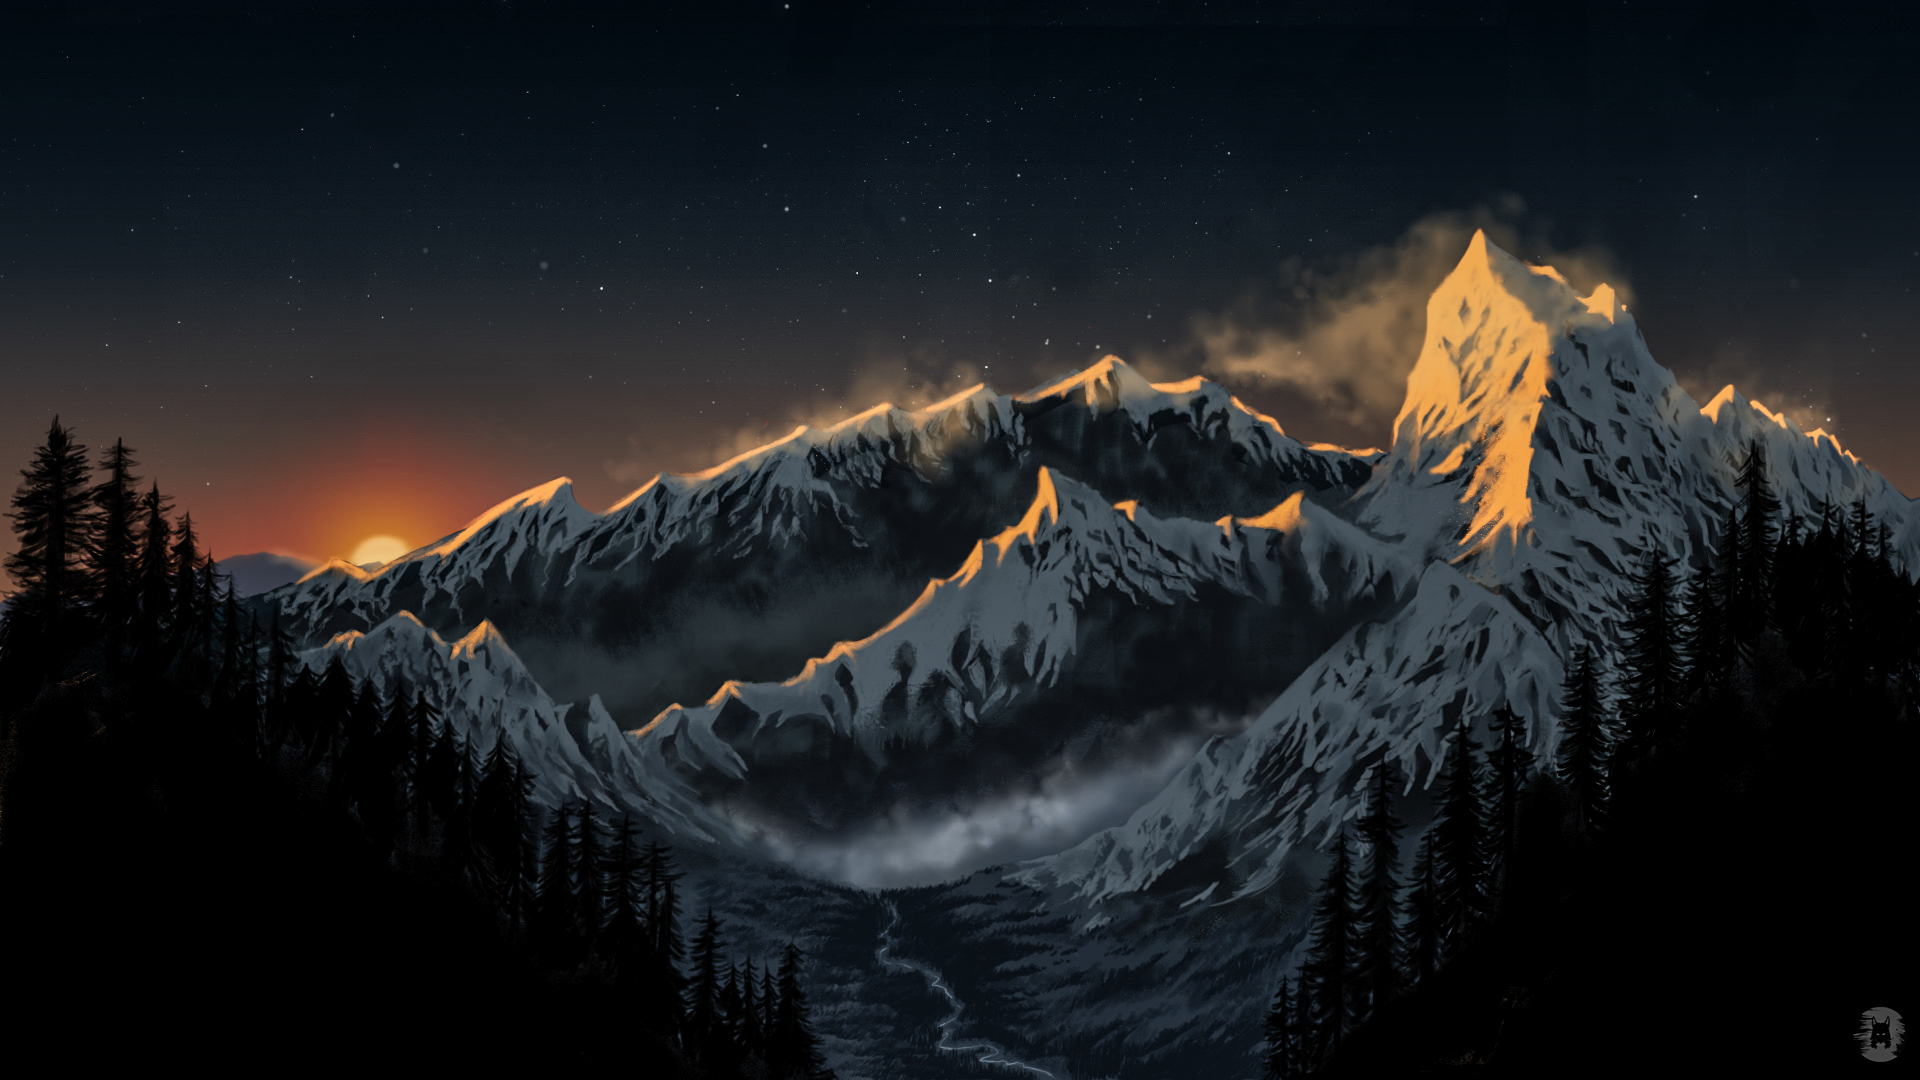 MOUNTAINS par Dimitri